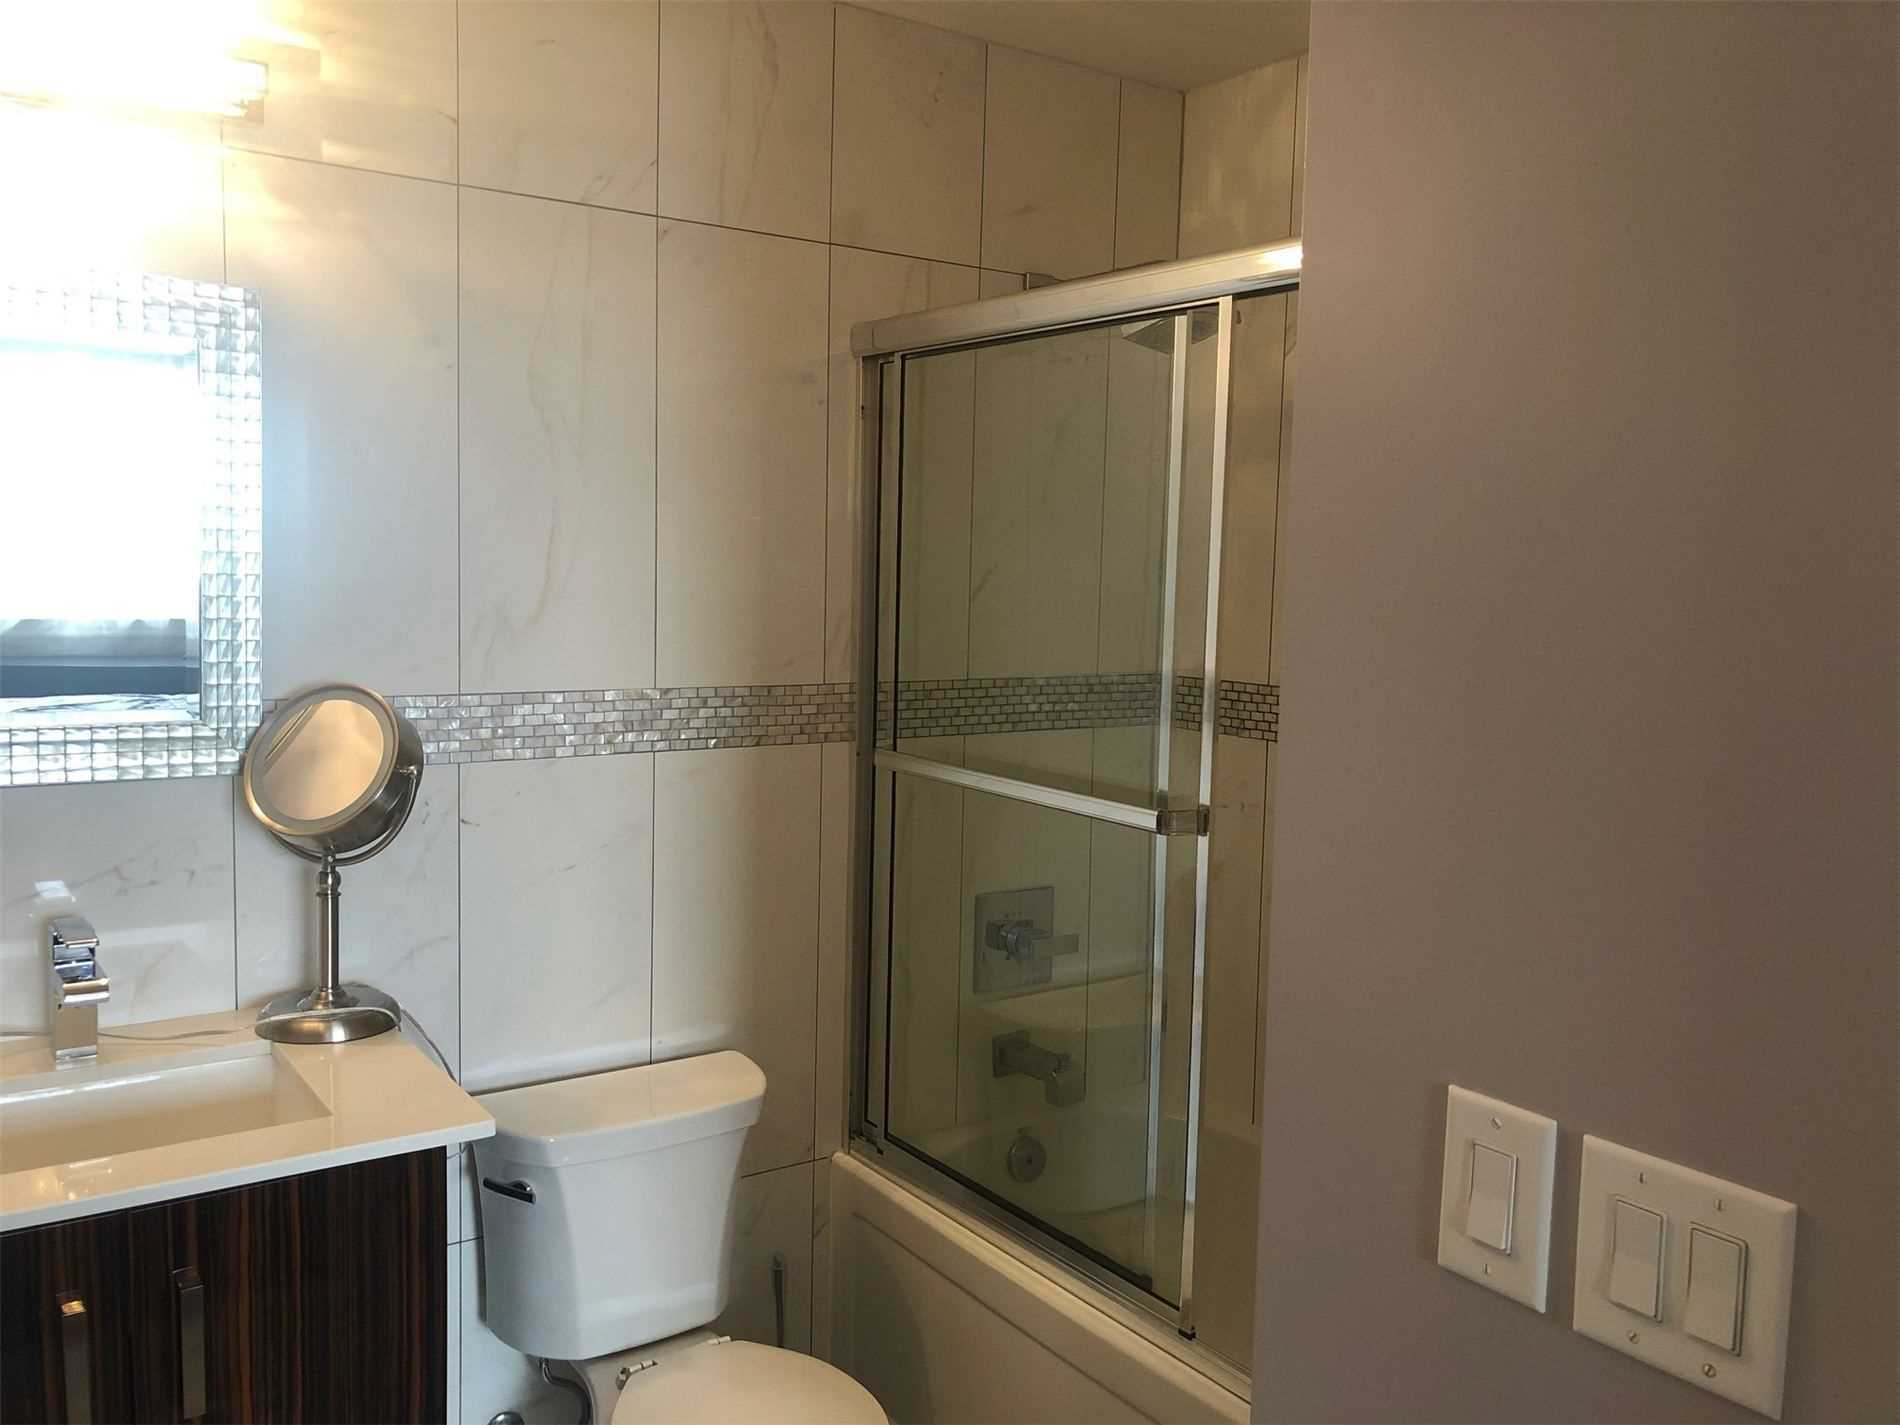 Image 8 of 8 showing inside of 1 Bedroom Condo Apt Apartment for Sale at 9245 Jane St Unit# 1414, Vaughan L6A1H7